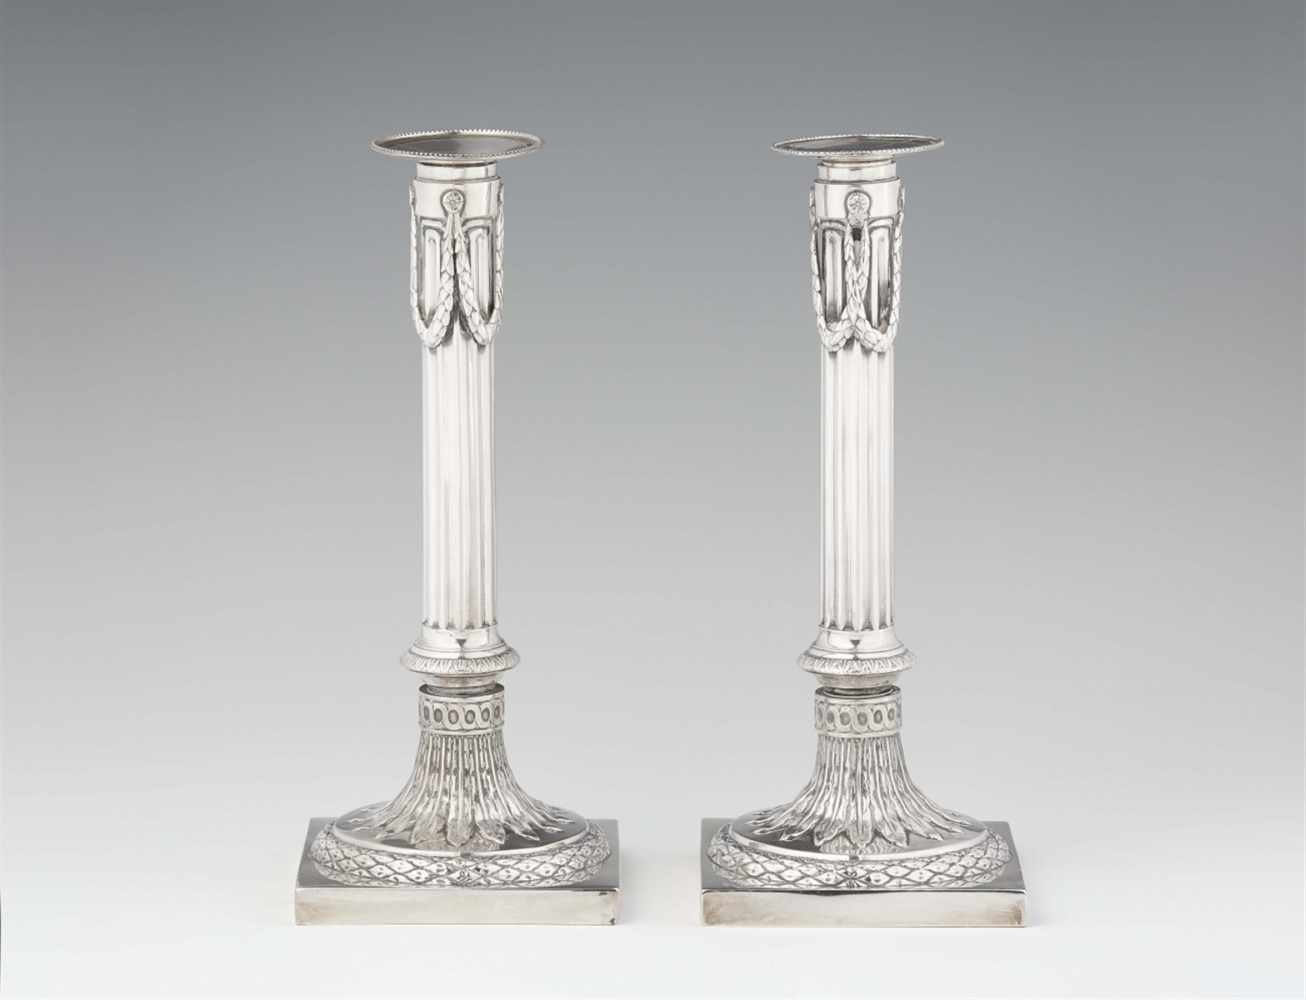 Lot 337 - A pair of Mannheim silver candlesticksFluted shafts supported by square plinths. H 26 cm, weight 720